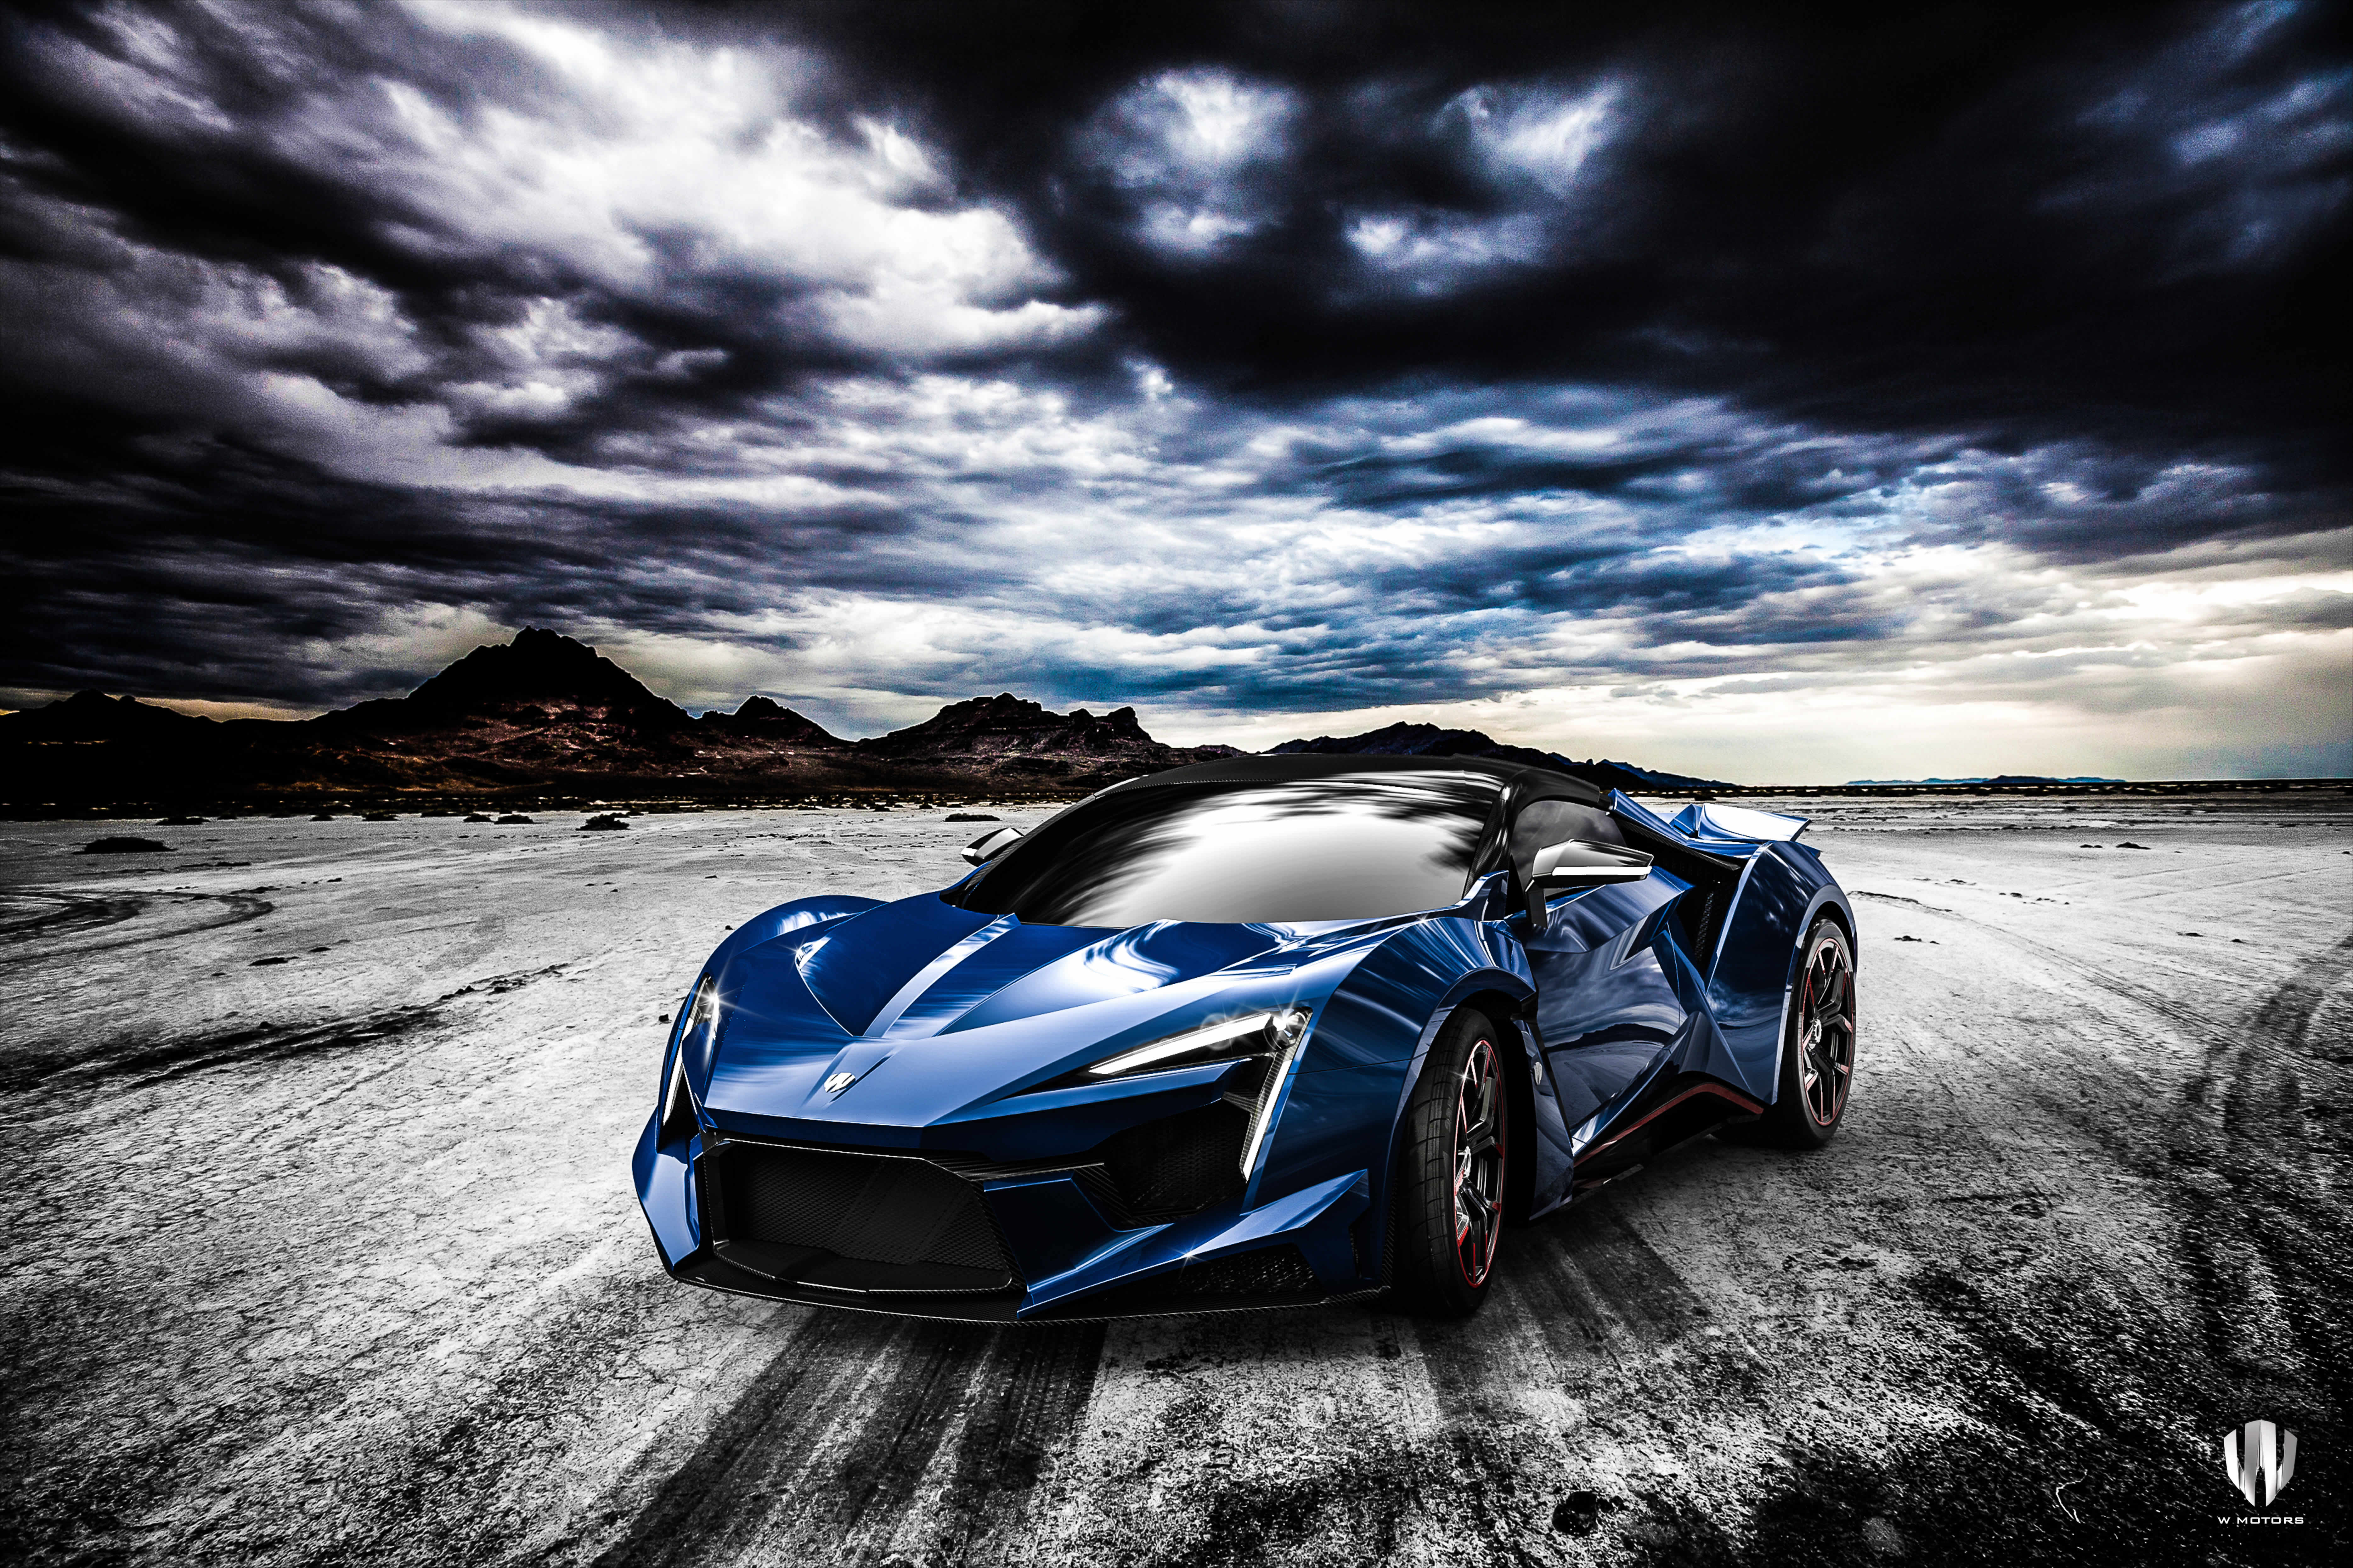 What Is Your Favourite Colour On The Fenyr Supersport